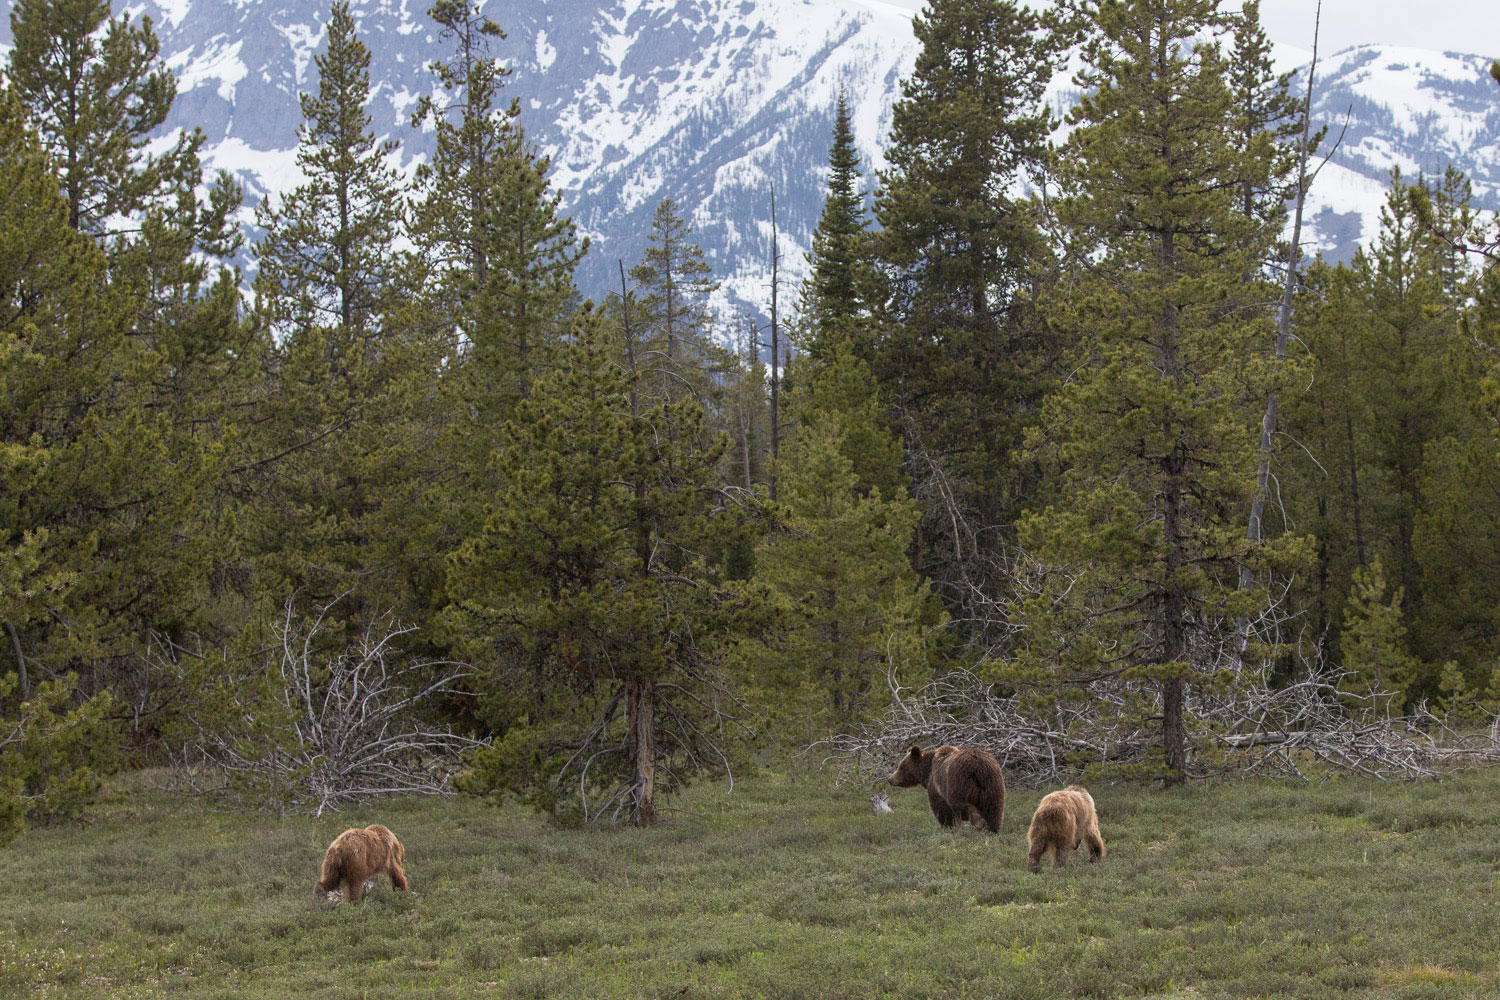 399, grizzly, bear, grand teton, photo, image, cub, 2018, Tetons, photo